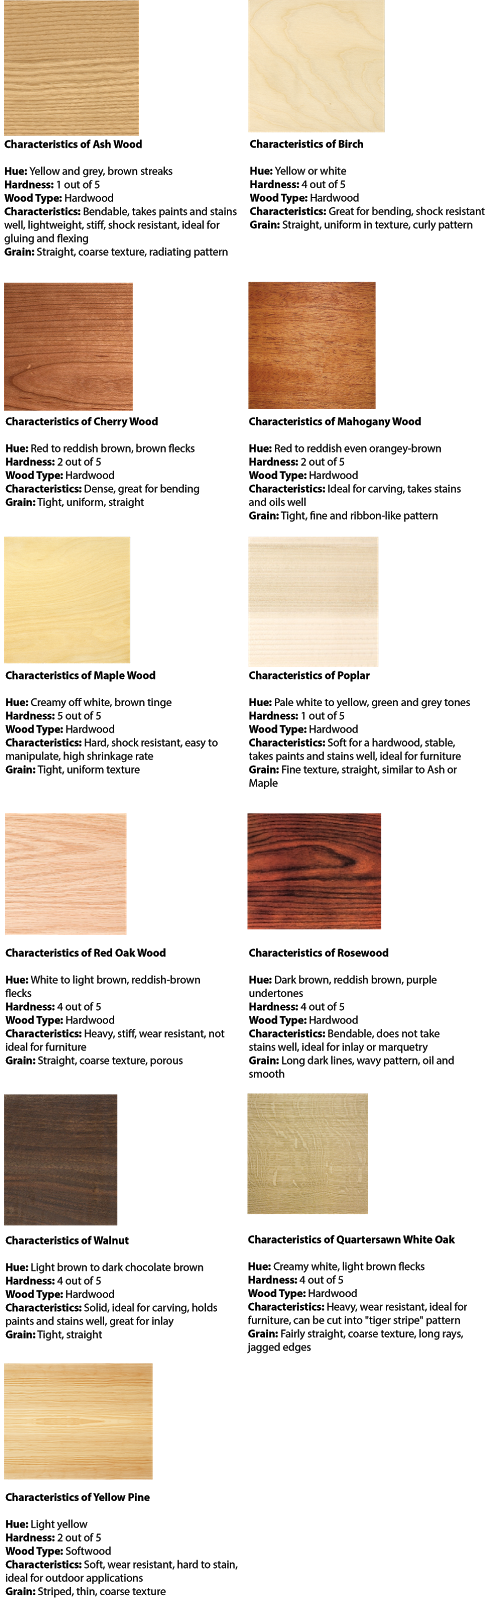 Superieur Learn Your Wood Types Including Wood Grains, Hardness, And Characteristics!